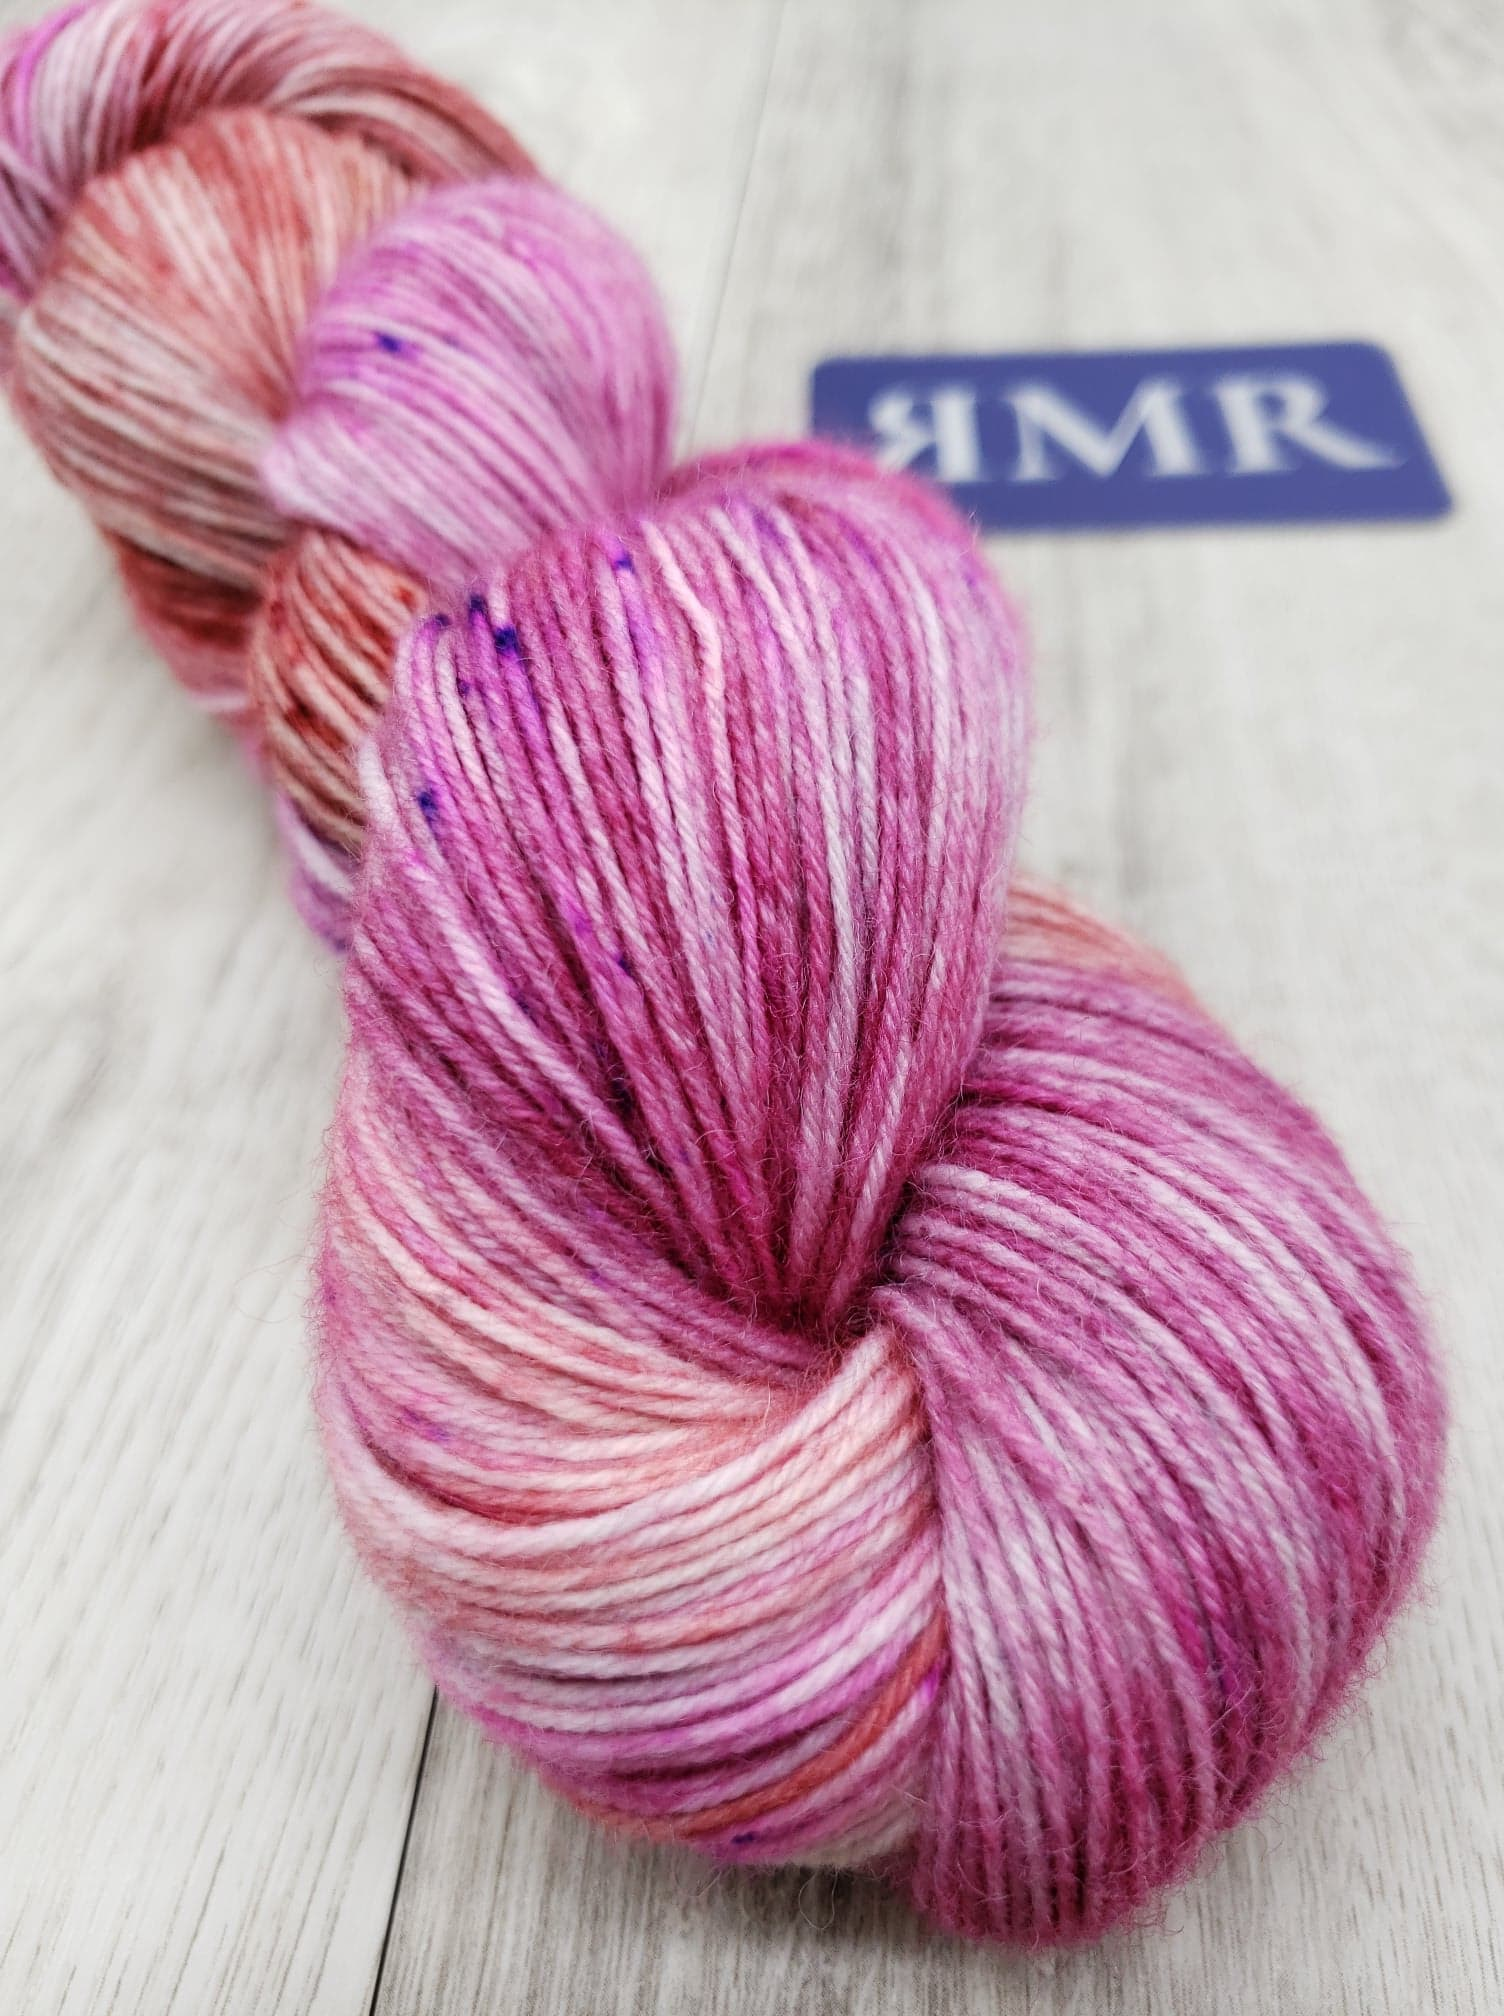 RMR Yarn Co. - More Colors!